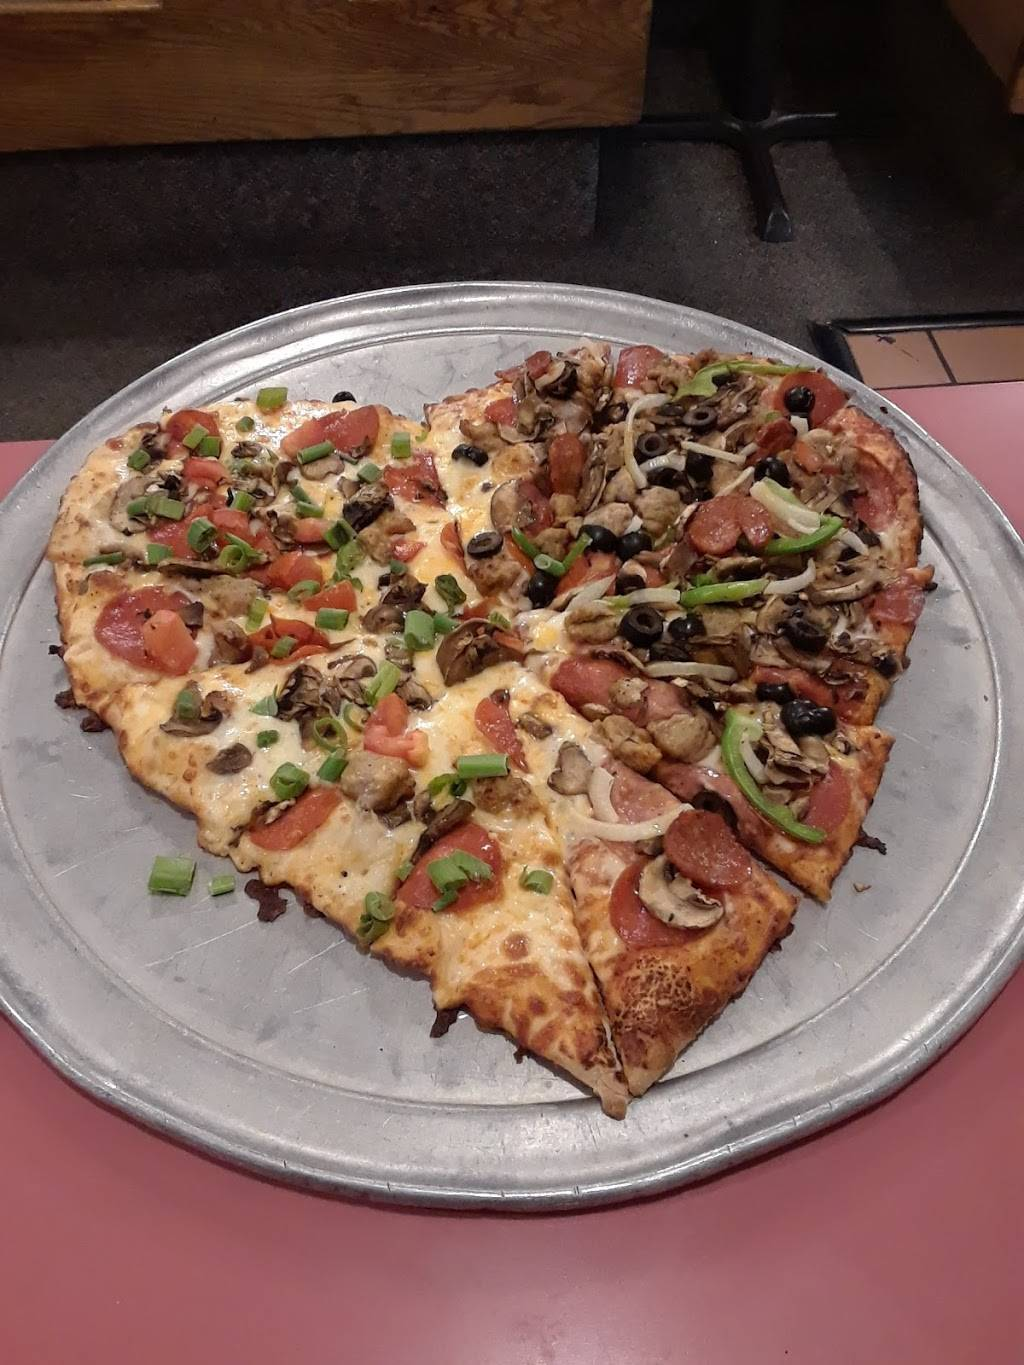 Round Table Pizza | meal delivery | 7873 Lichen Dr, Citrus Heights, CA 95621, USA | 9167235910 OR +1 916-723-5910